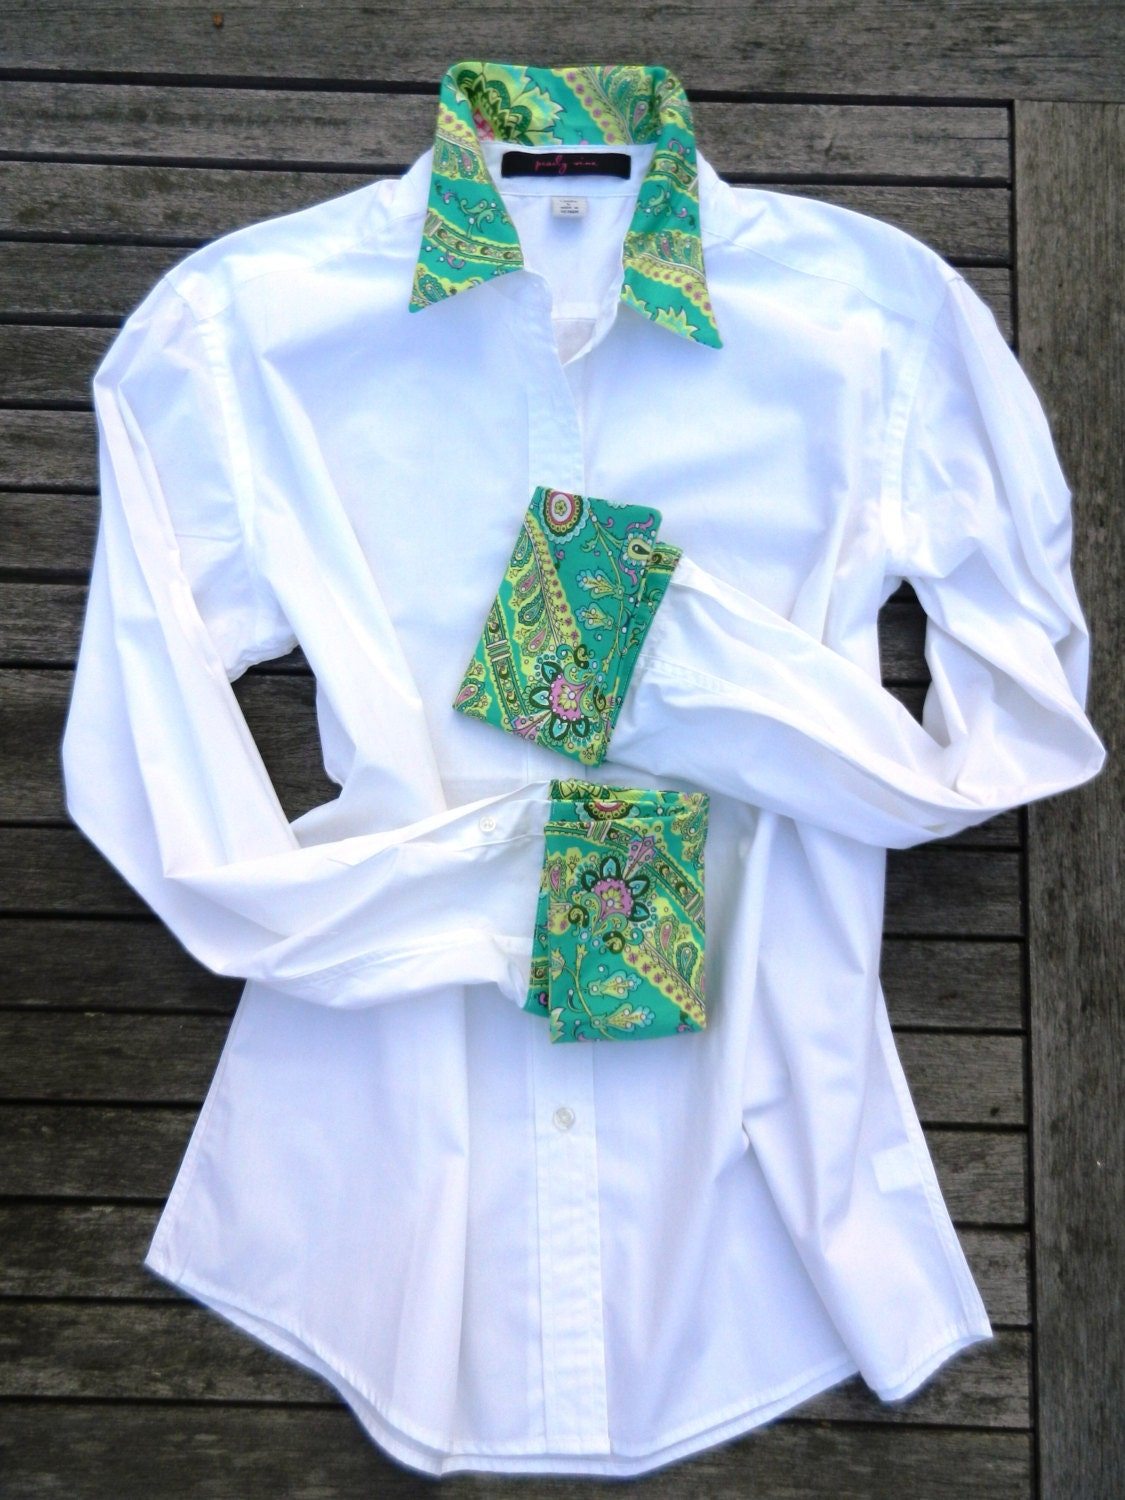 white french cuff shirt w green paisley cuffs and collar